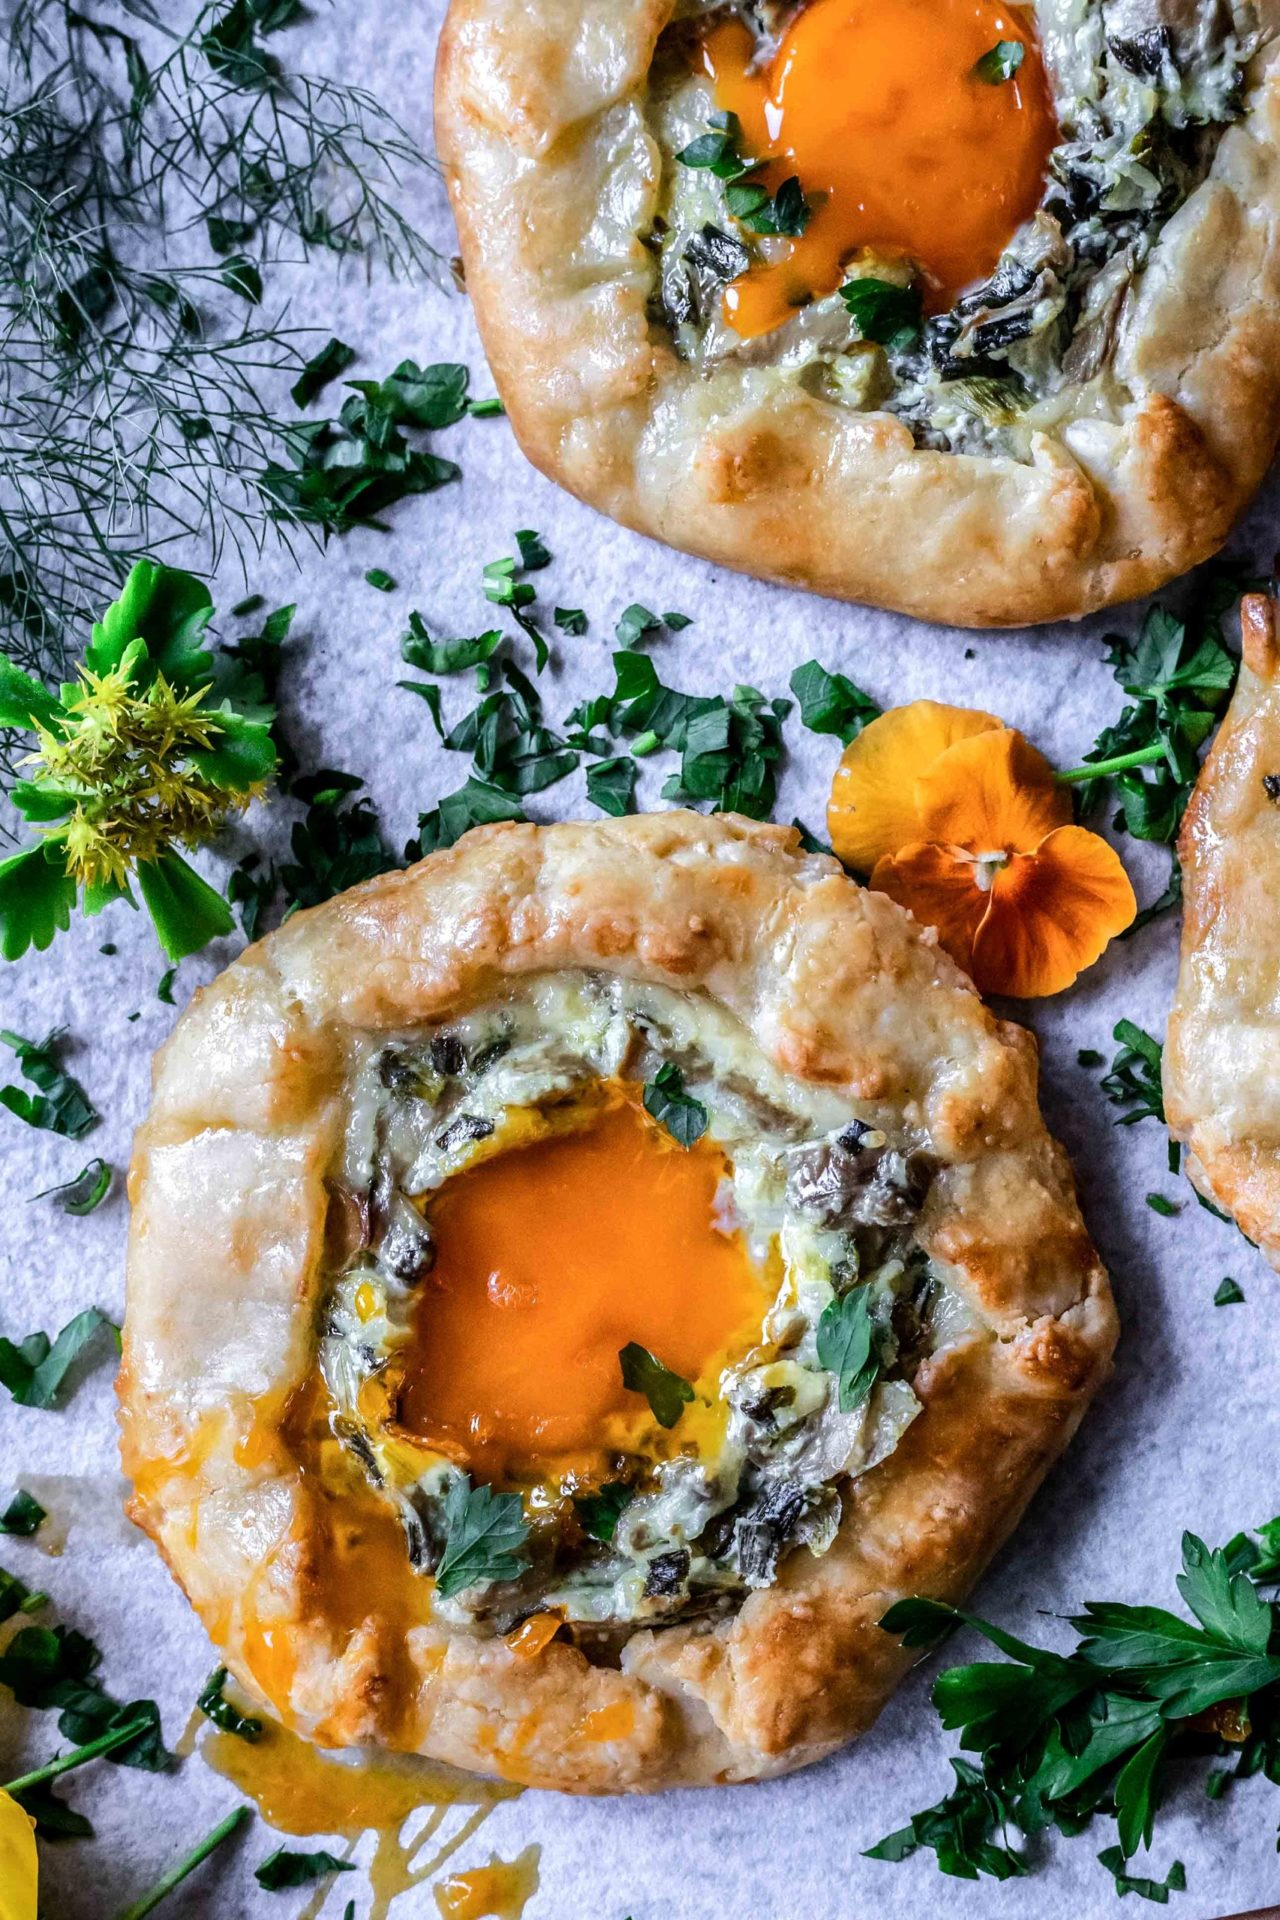 This Mushroom and Egg Galette is low FODMAP and Gluten-Free! Plus it is very simple to make, savory, cheesy and so delicious!